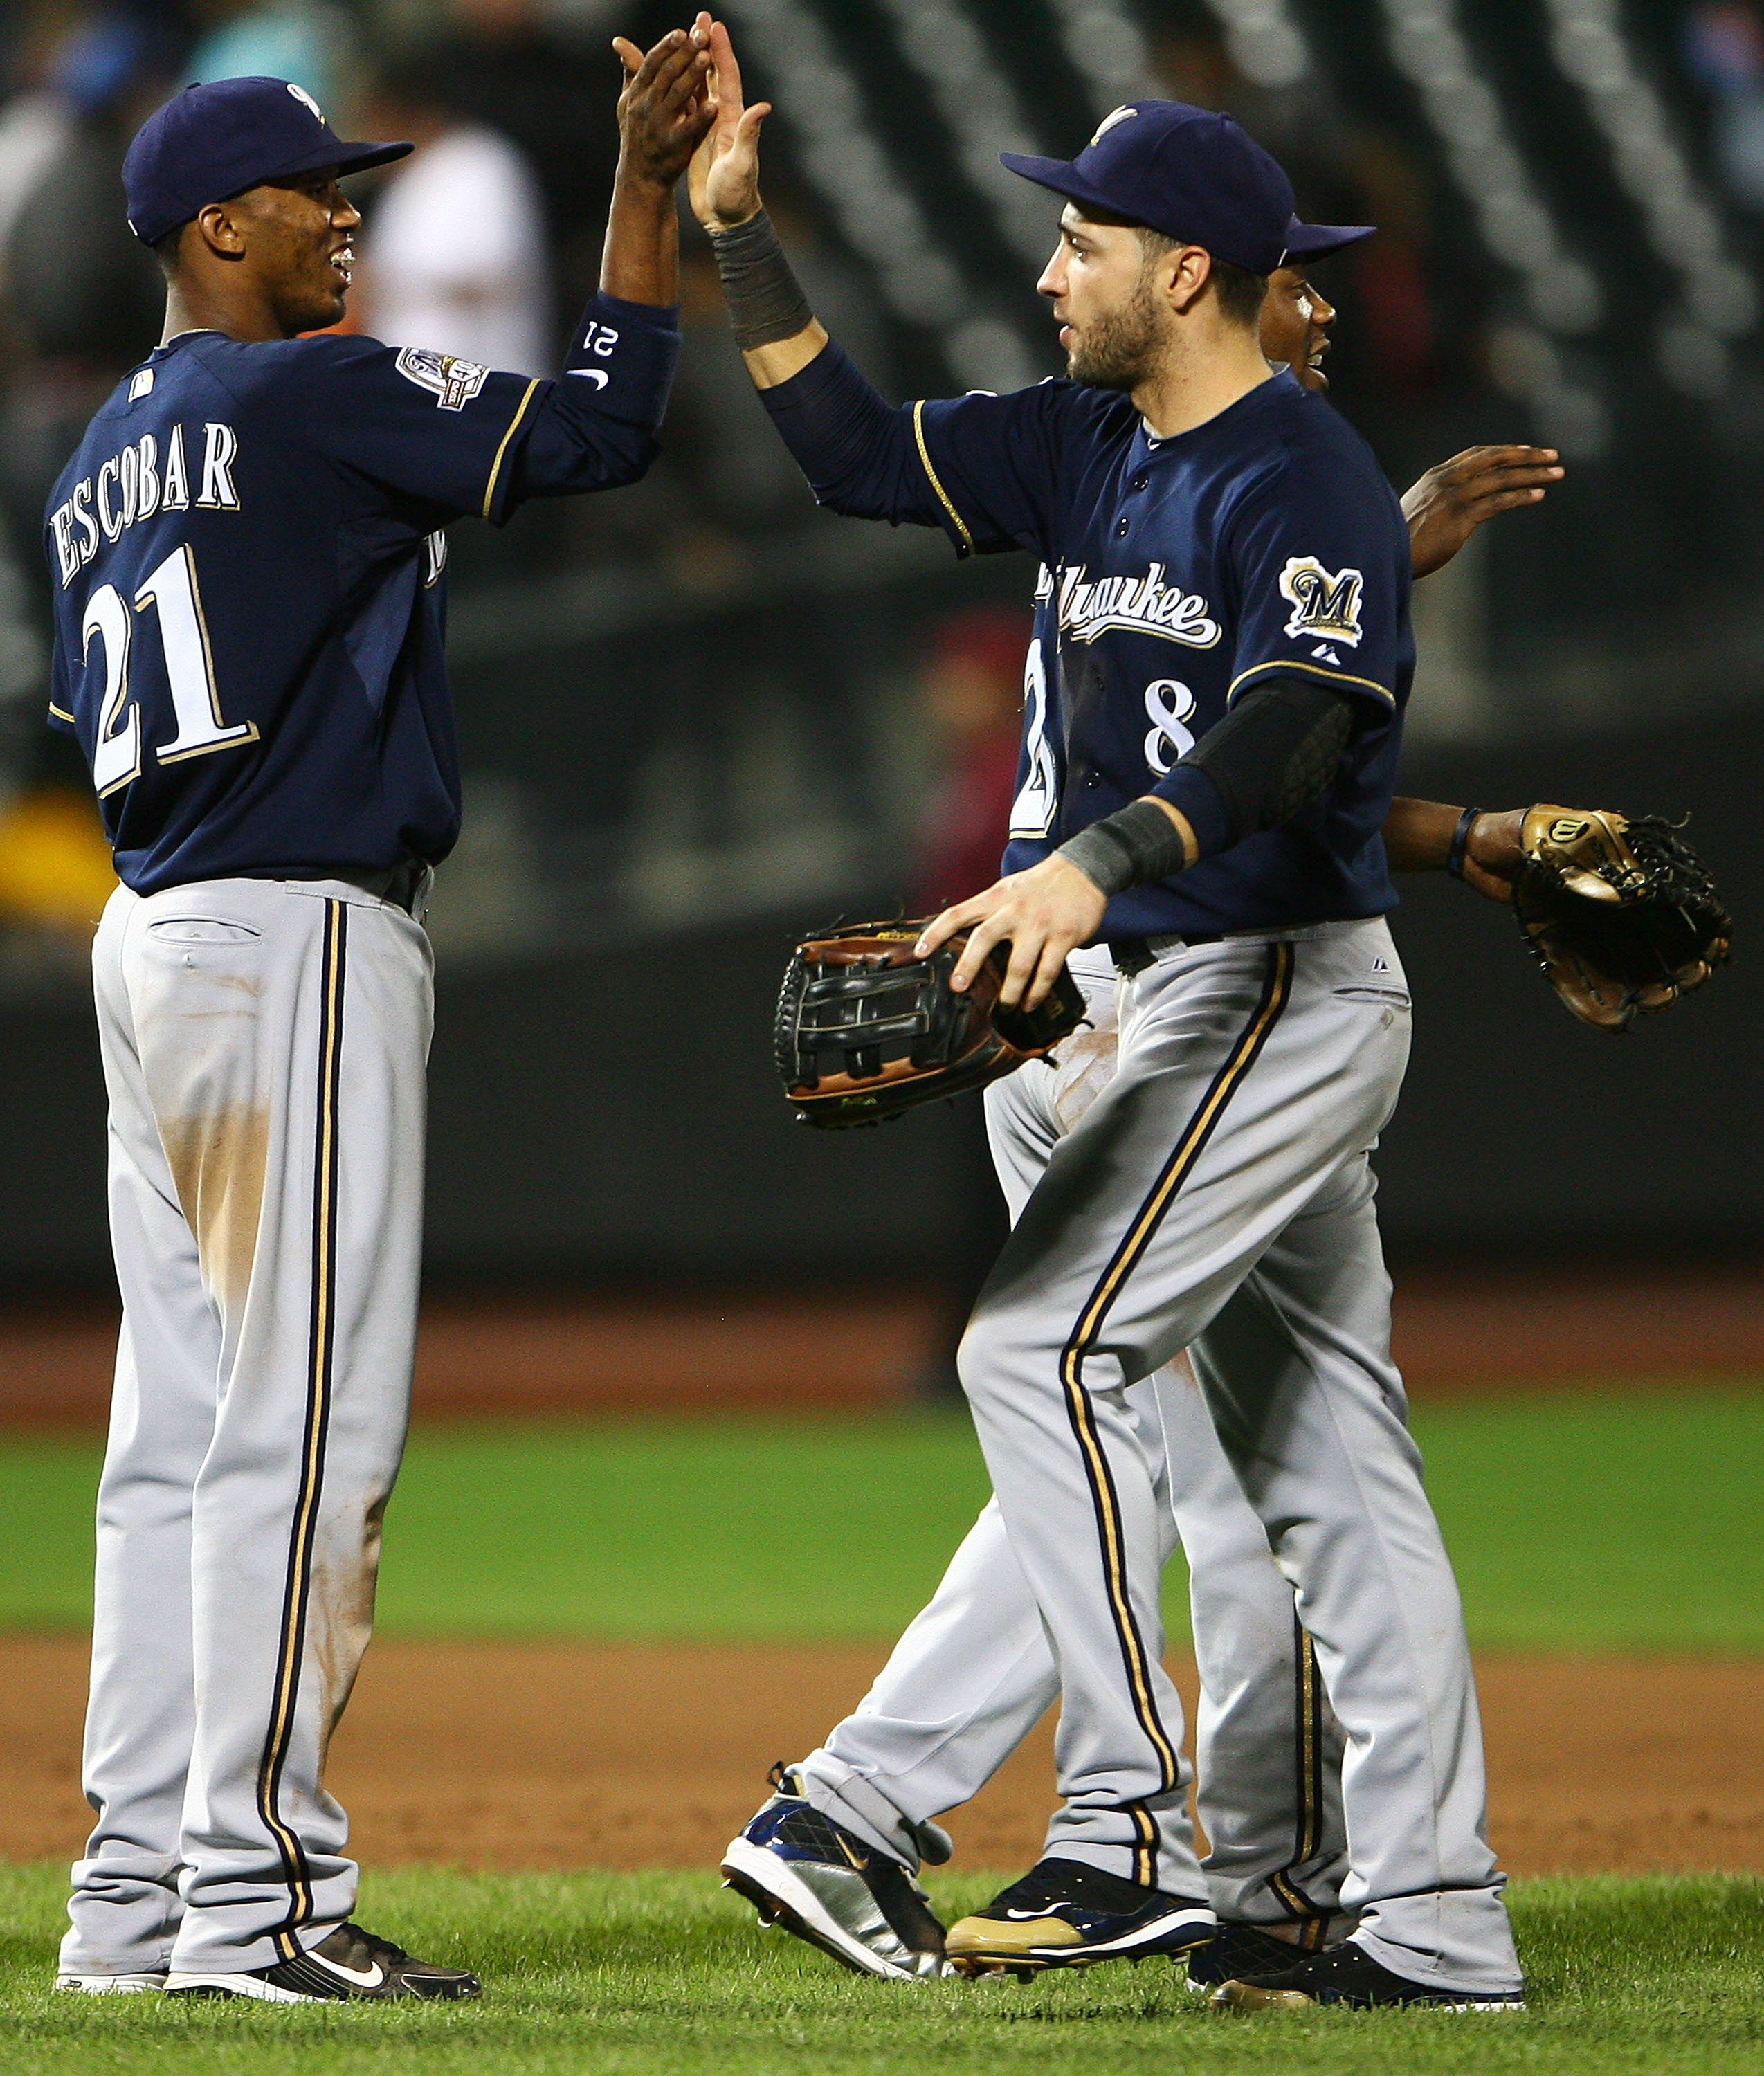 After several years of futility, the Brewers may have something to strive for in 2011.